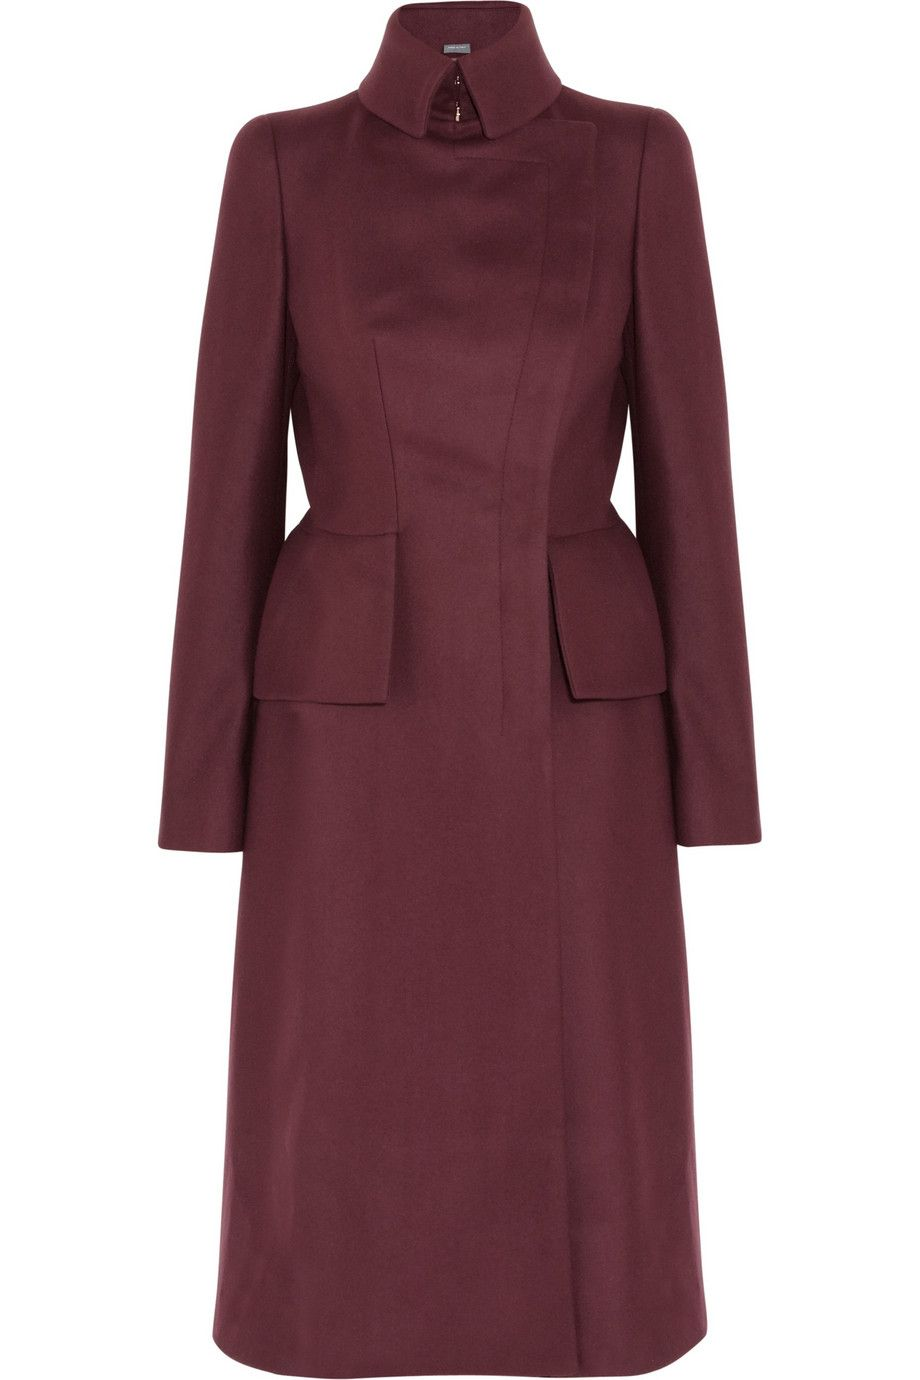 Alexander Mcqueen Wool and Cashmere Blend Felt Coat in Purple (bordeaux) | Lyst ; $4245